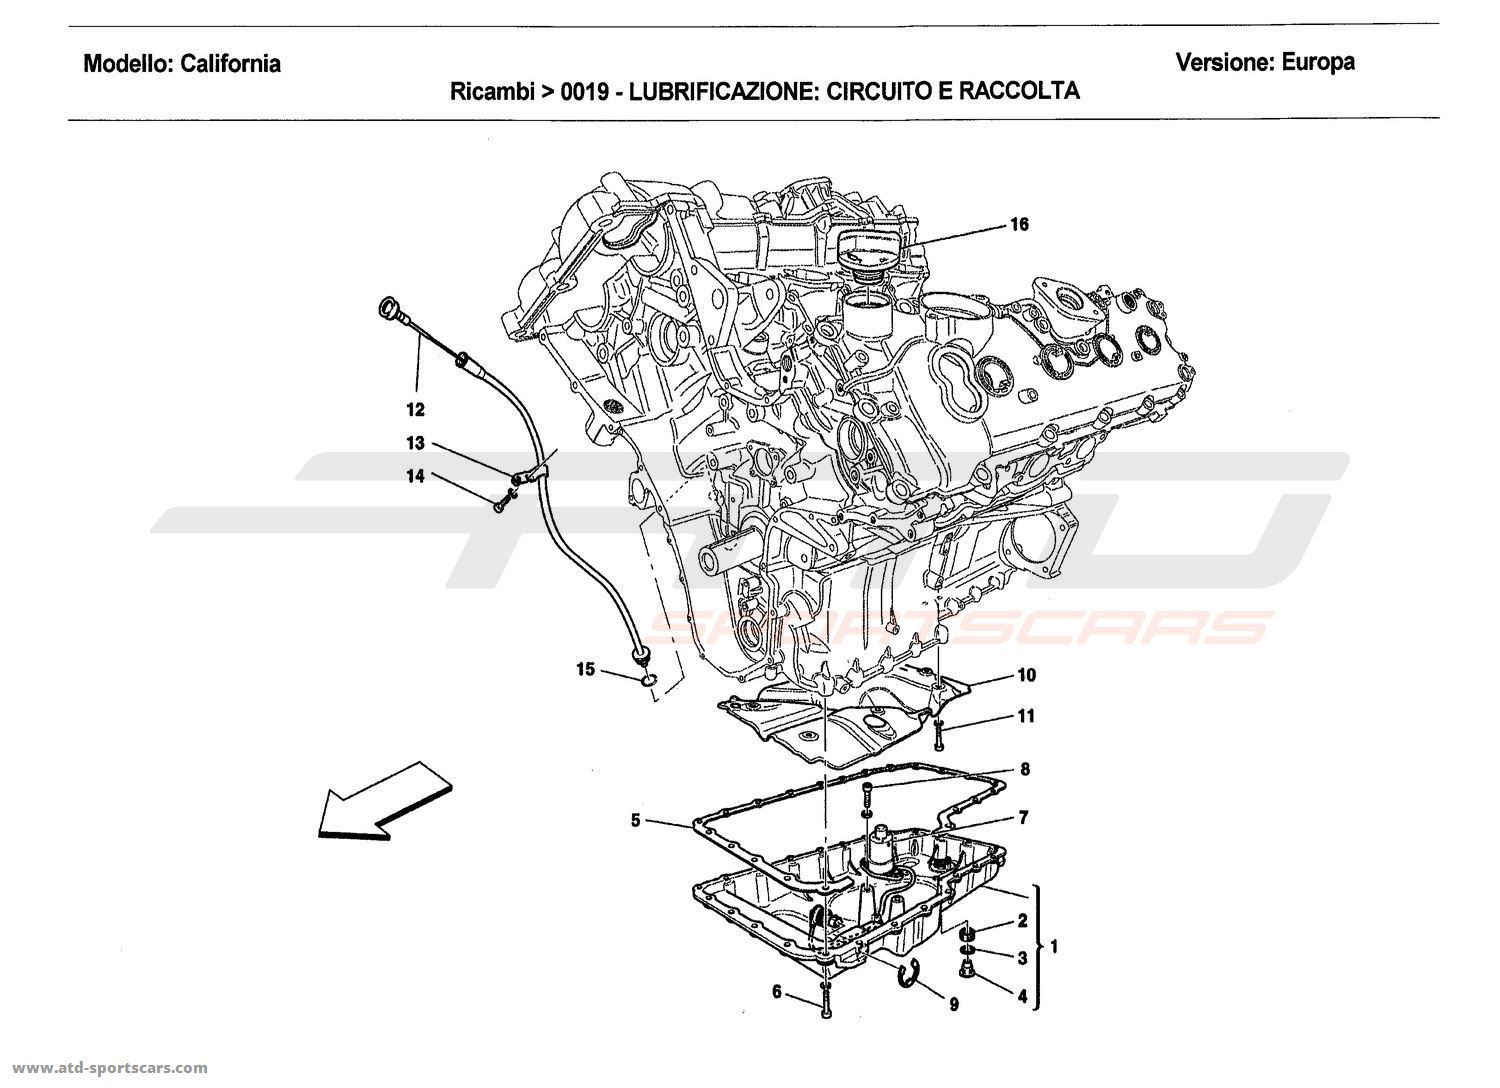 LUBRICATION: CIRCUIT AND PICKUP